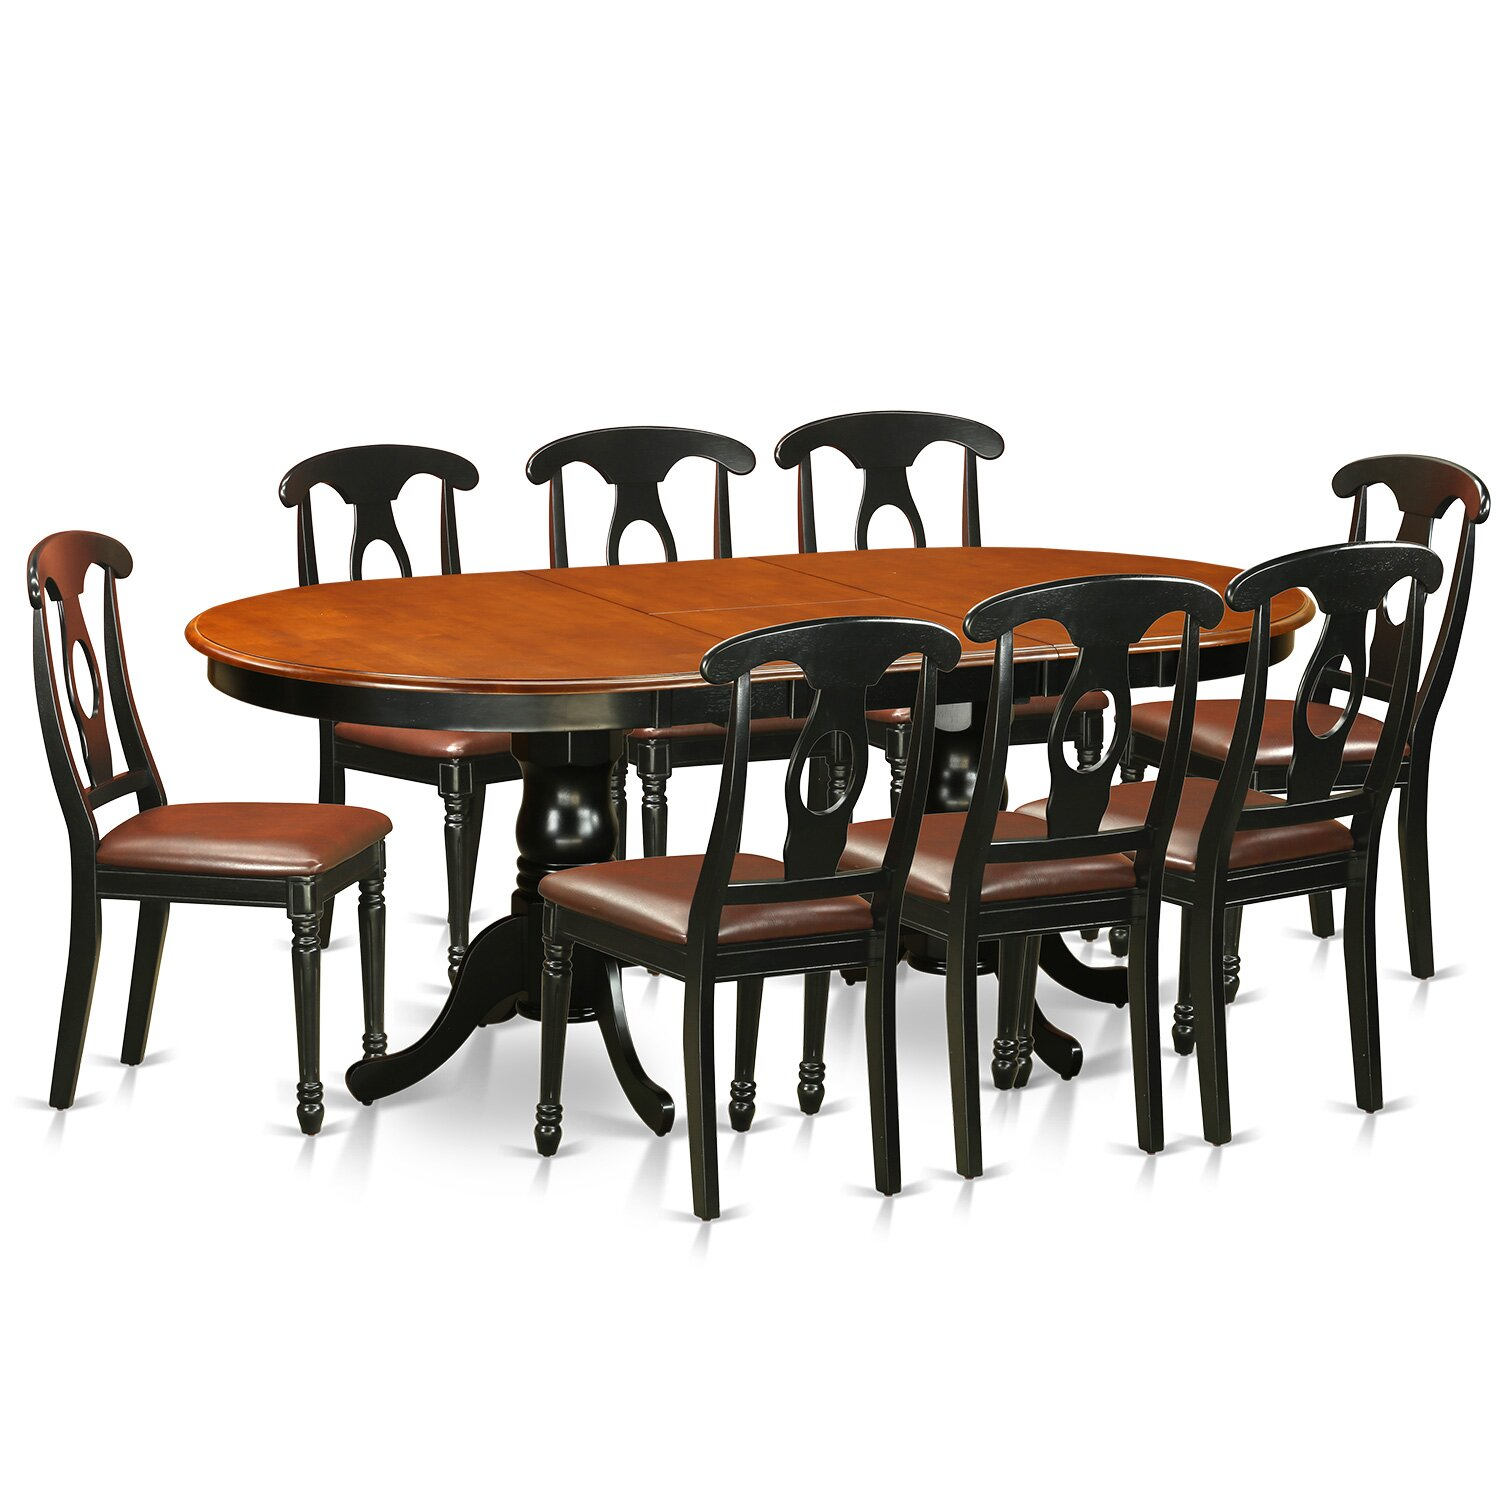 East west plainville 9 piece dining set reviews wayfair for Dining room furniture 9 piece